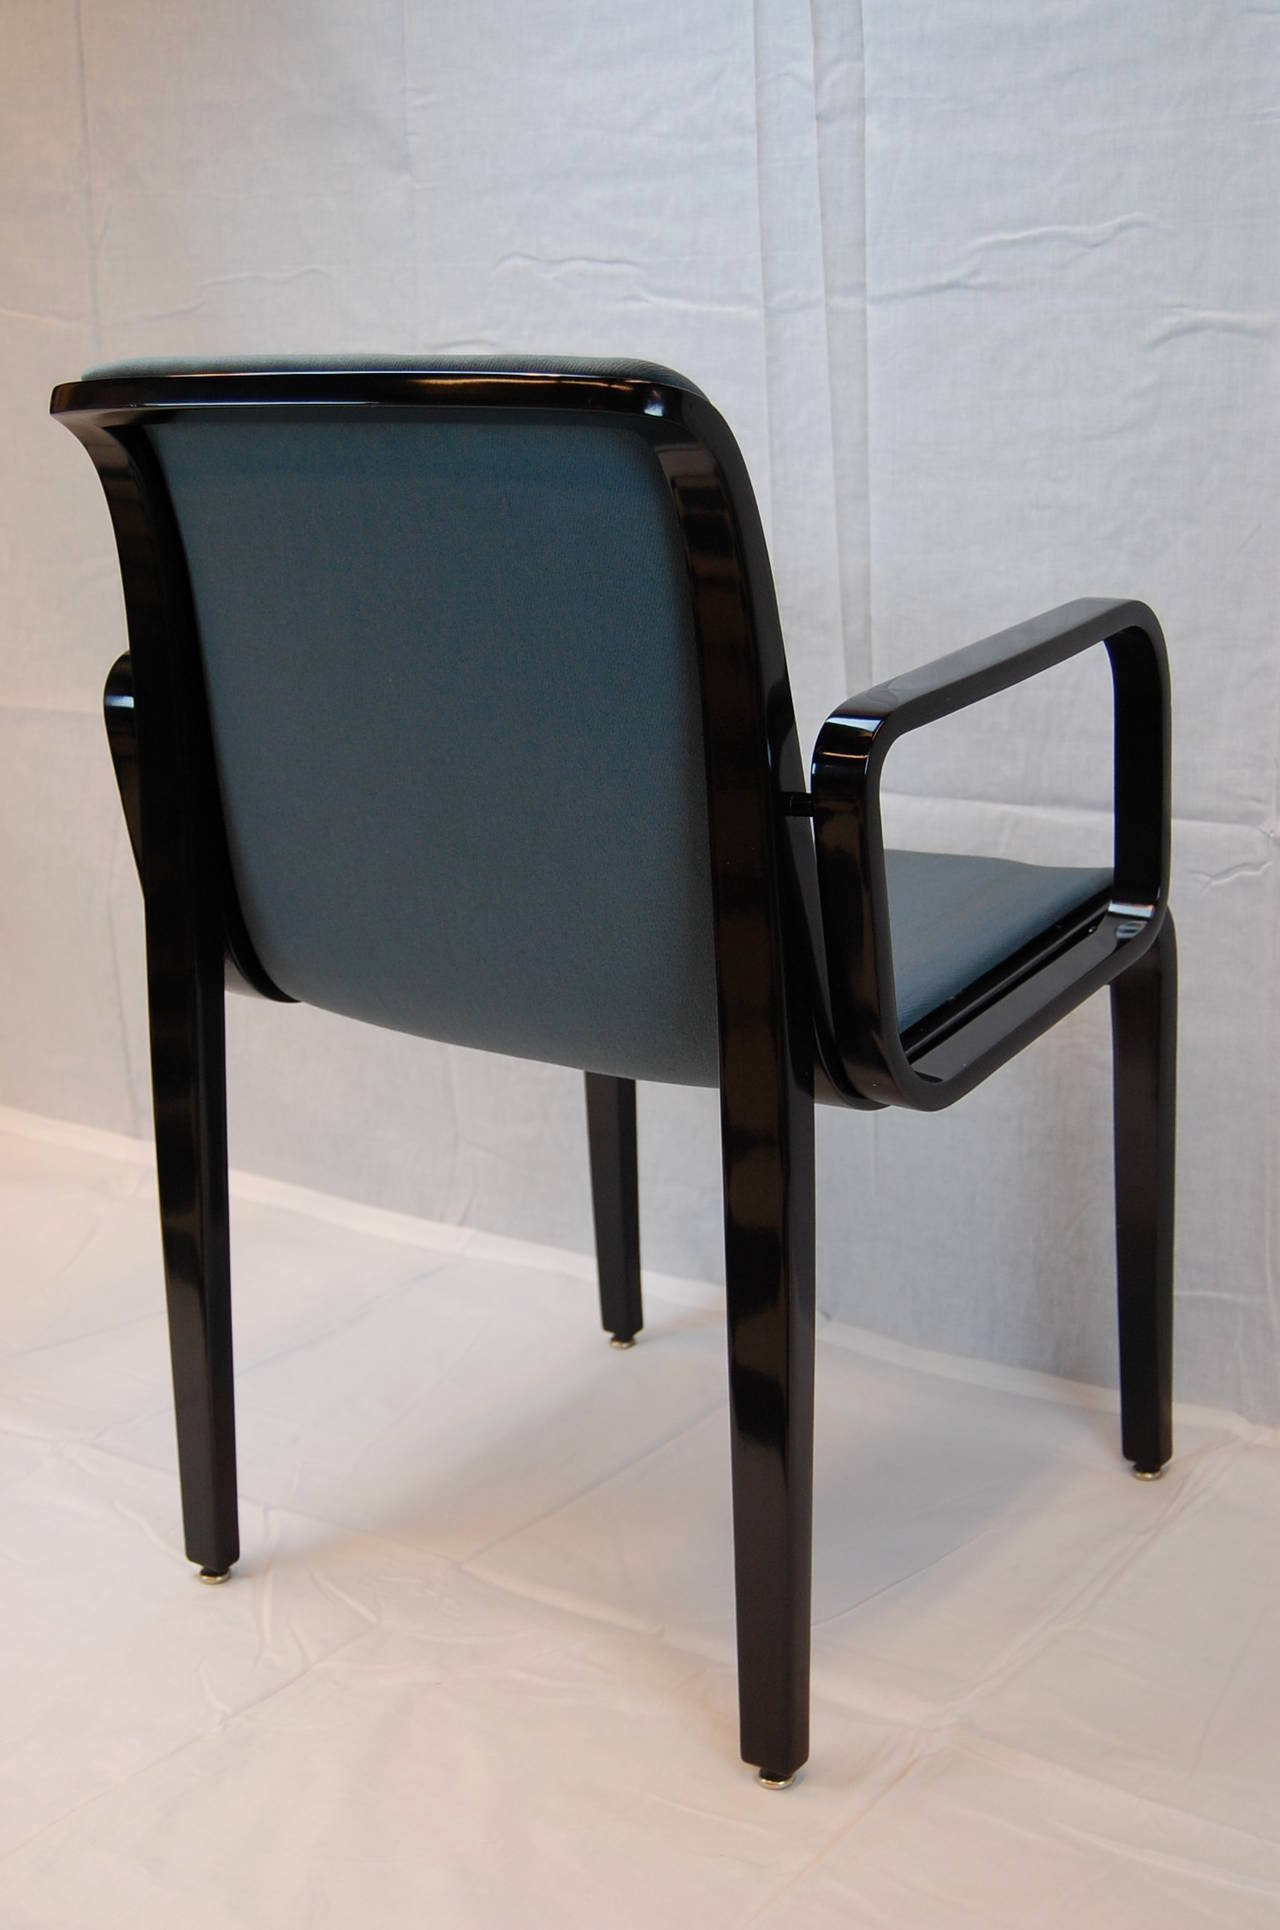 Bill Of Sale for Furniture Luxury Black Lacquered Armchair by Bill Stephens for Knoll Furniture for Sale at 1stdibs